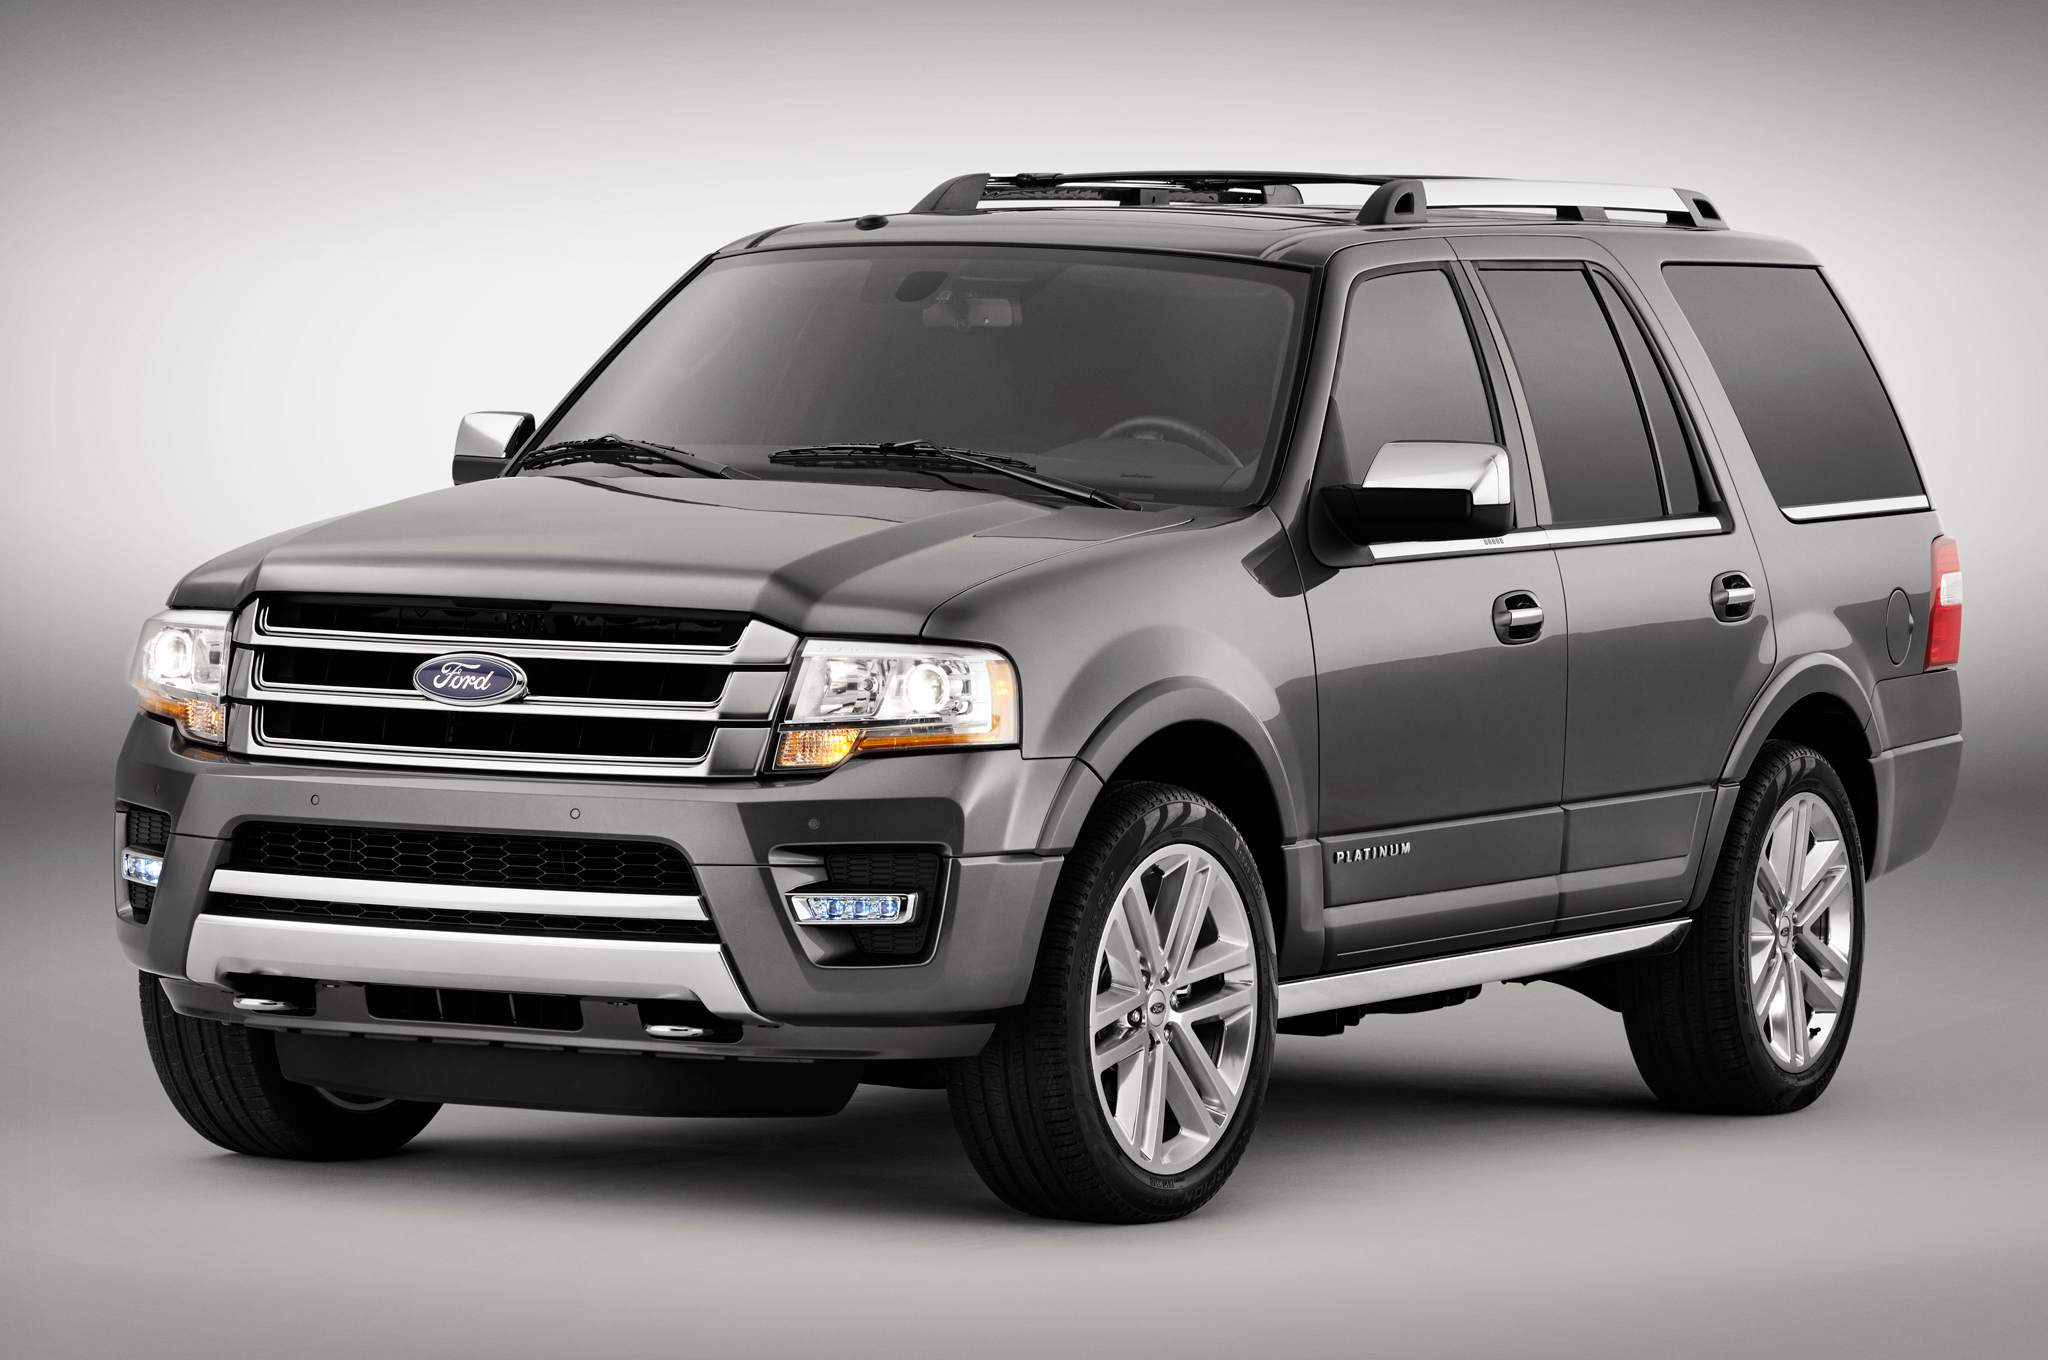 2015 Expedition #8